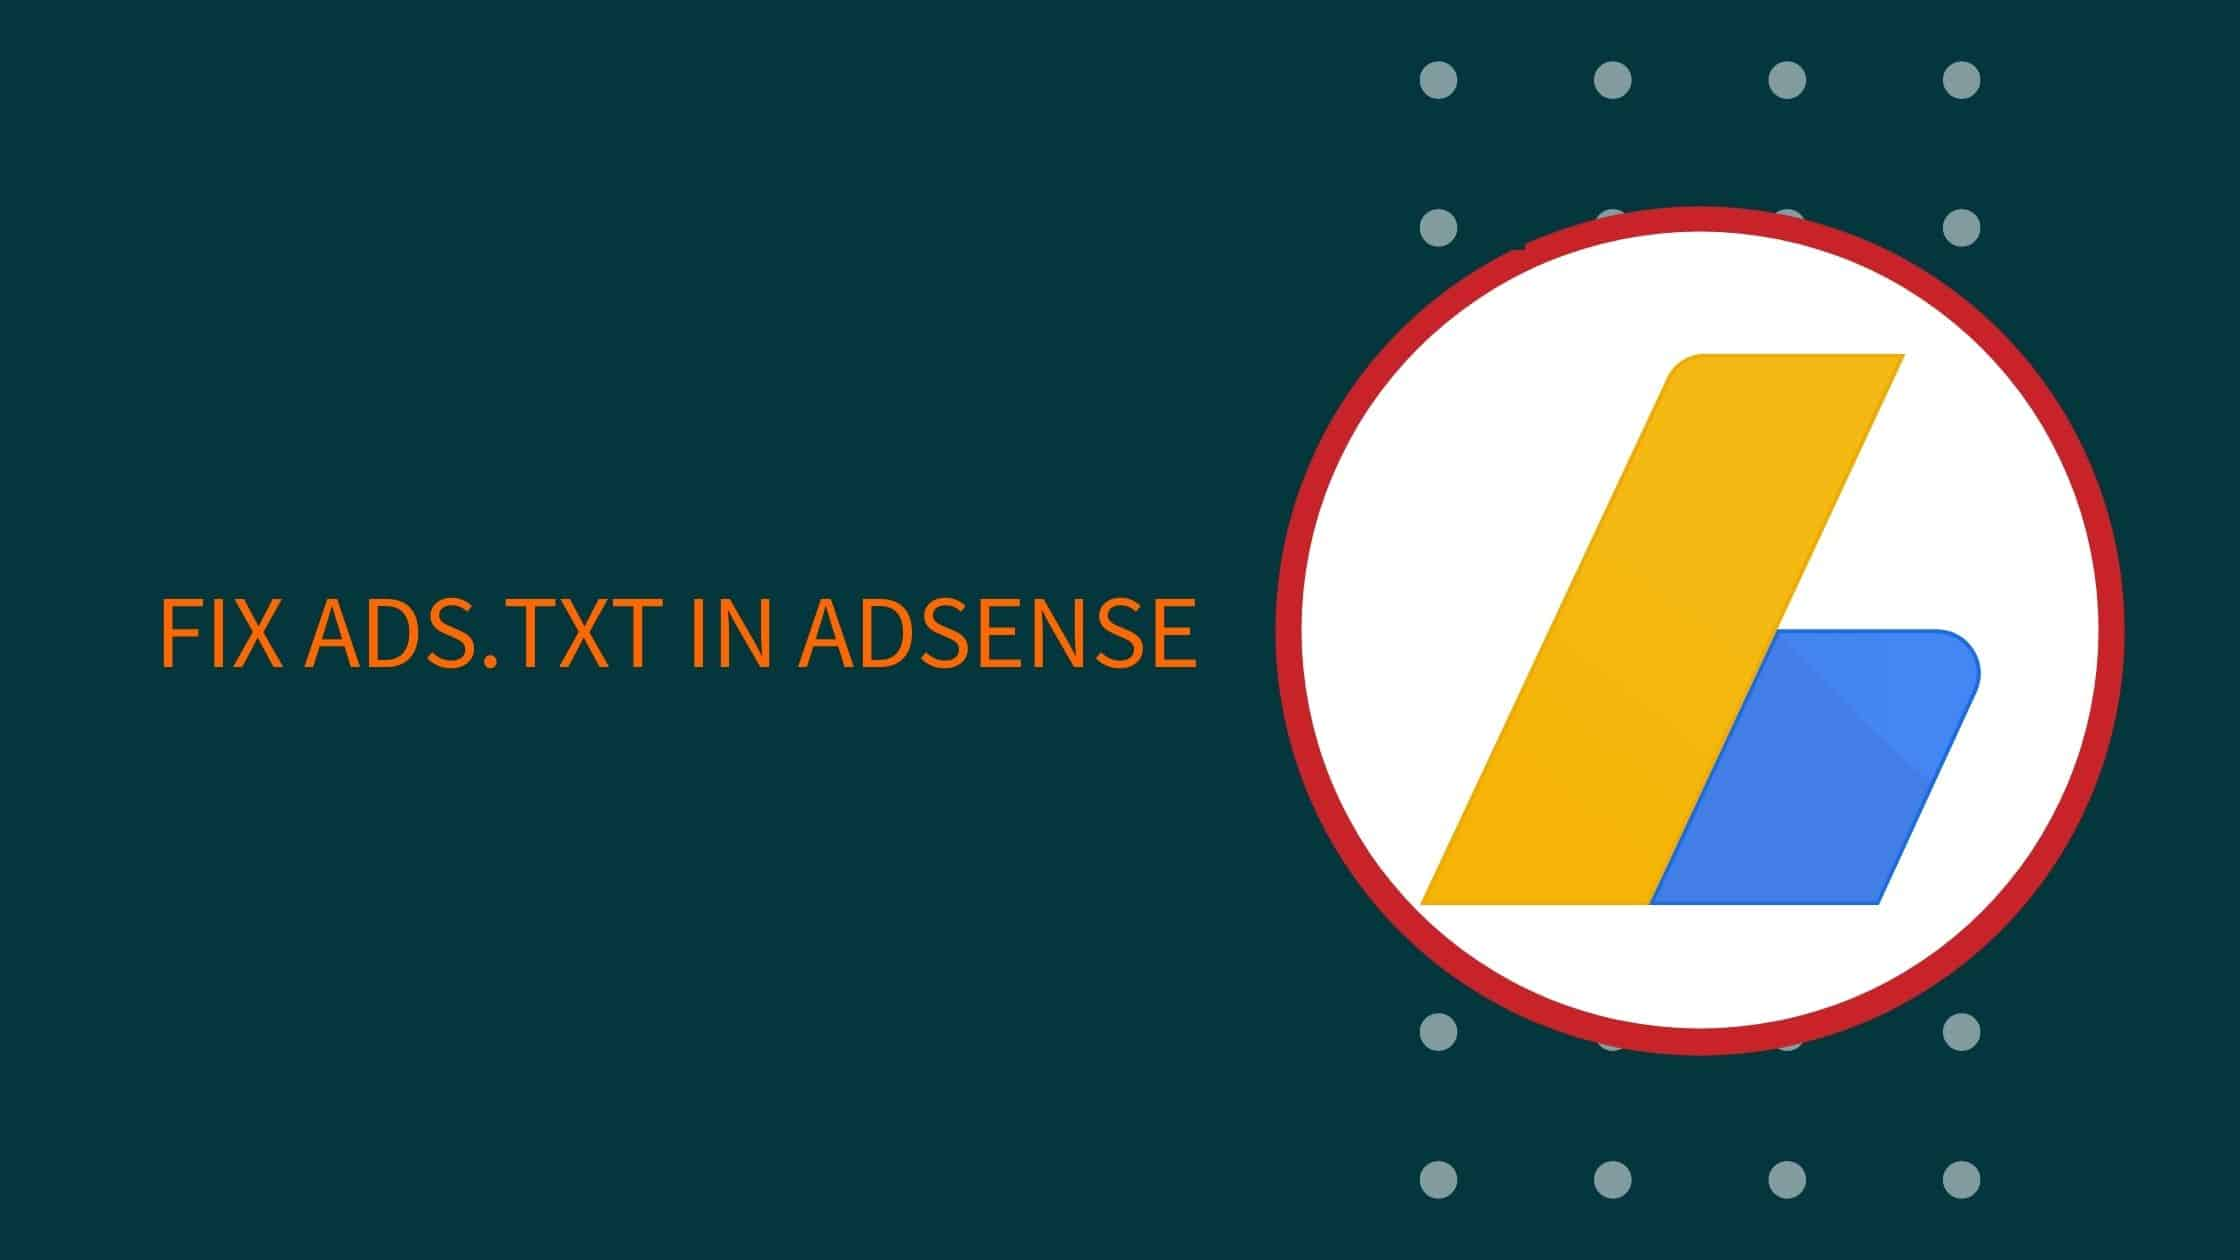 AdSense ads.txt: Earnings At Risk – You Need To Fix Some ads.txt File Issues